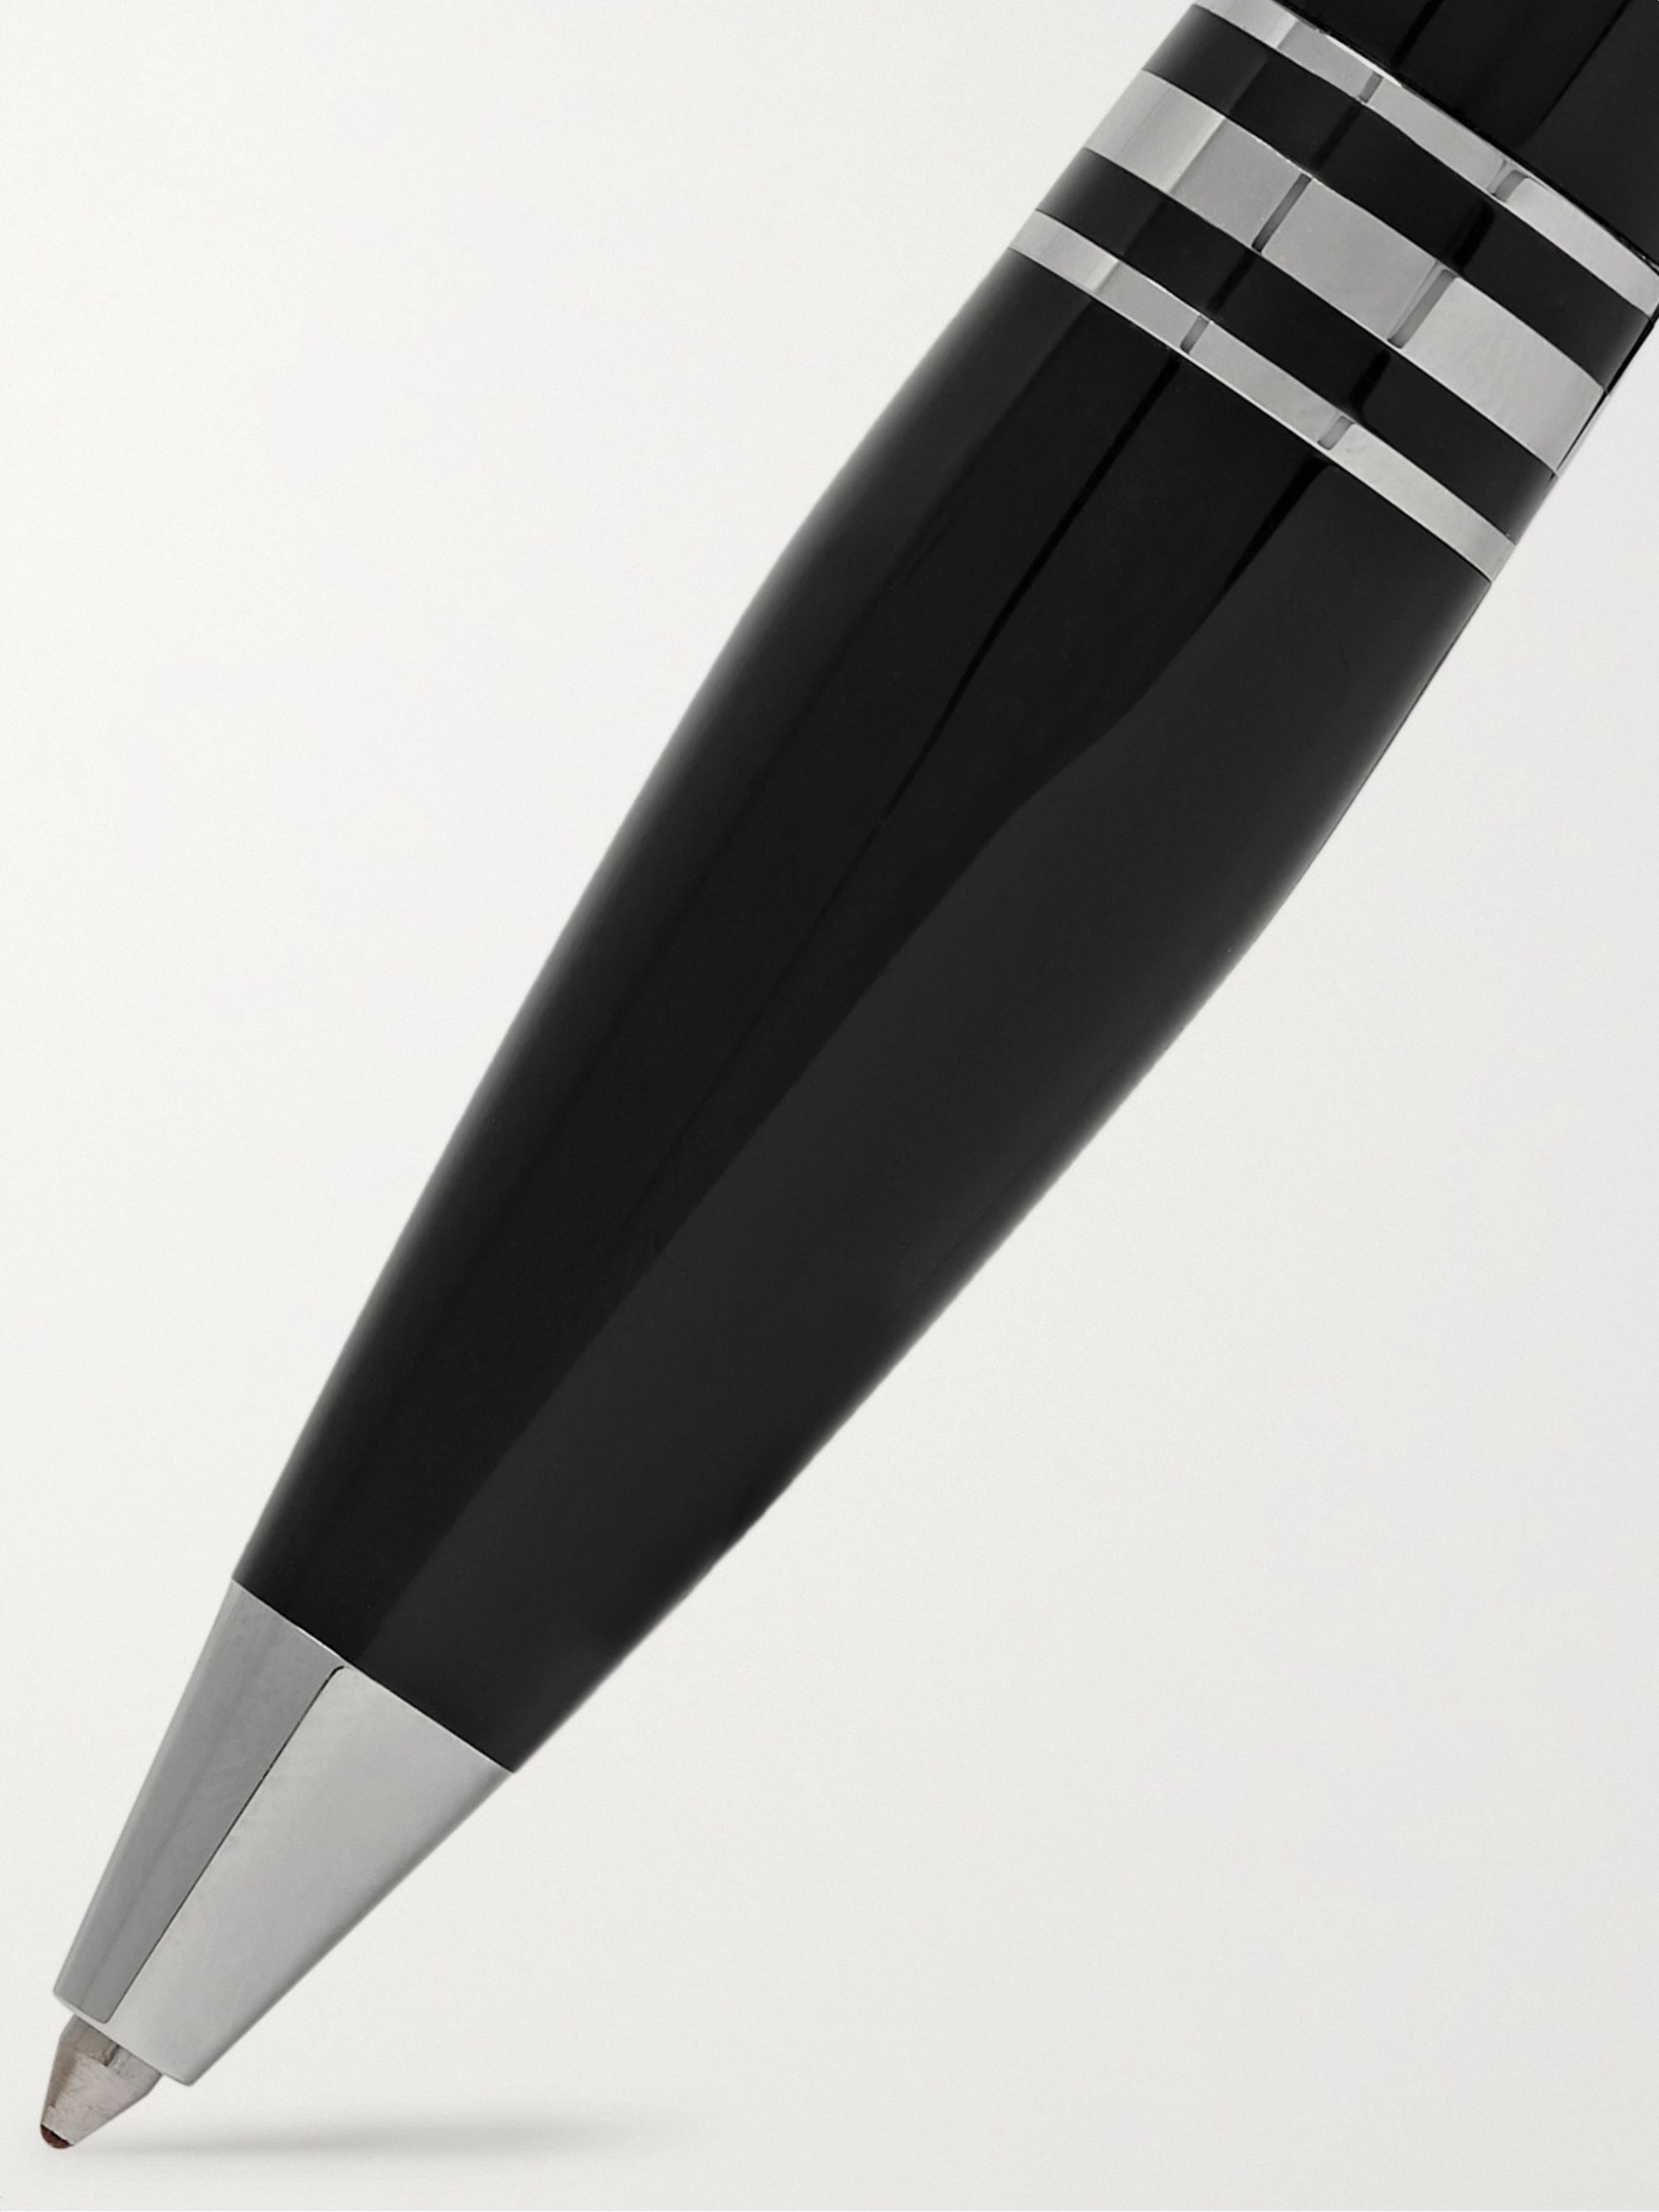 Montblanc StarWalker Resin and Platinum Ballpoint Pen